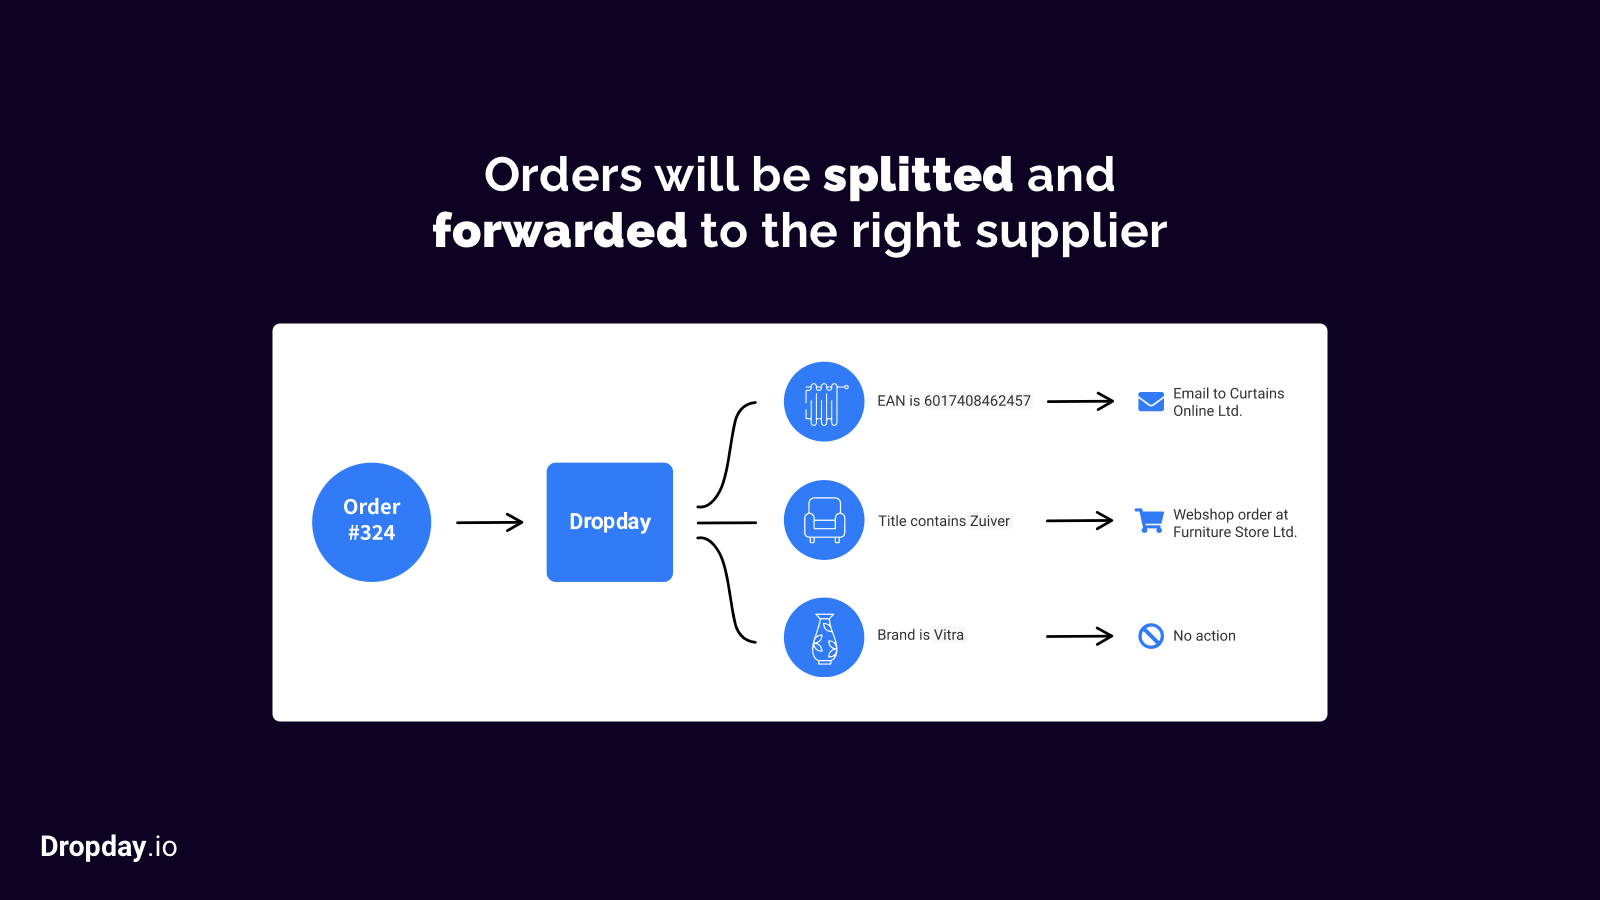 After splitting the order, the products will be ordered